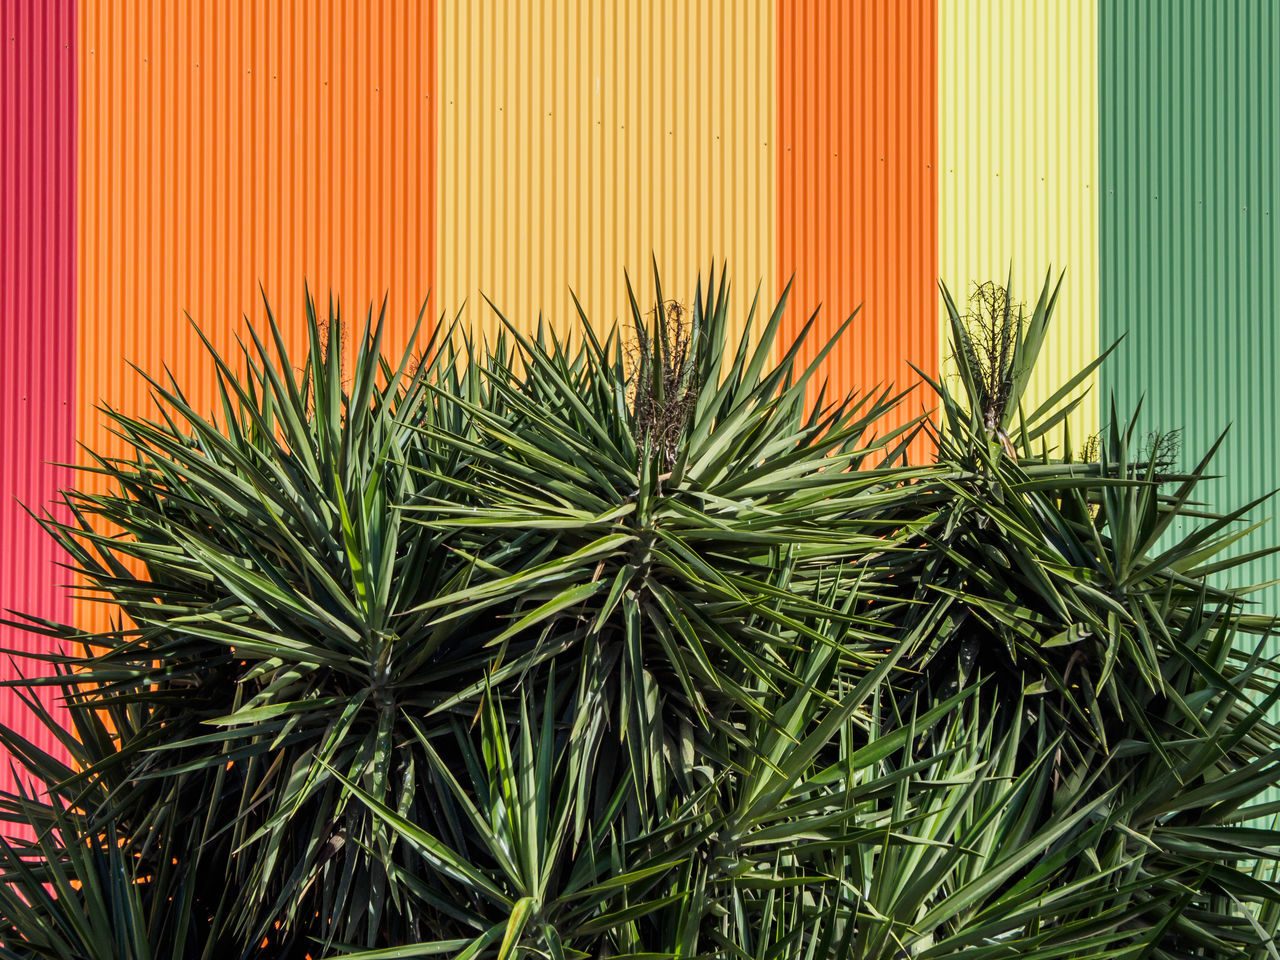 Plants growing against colorful wall